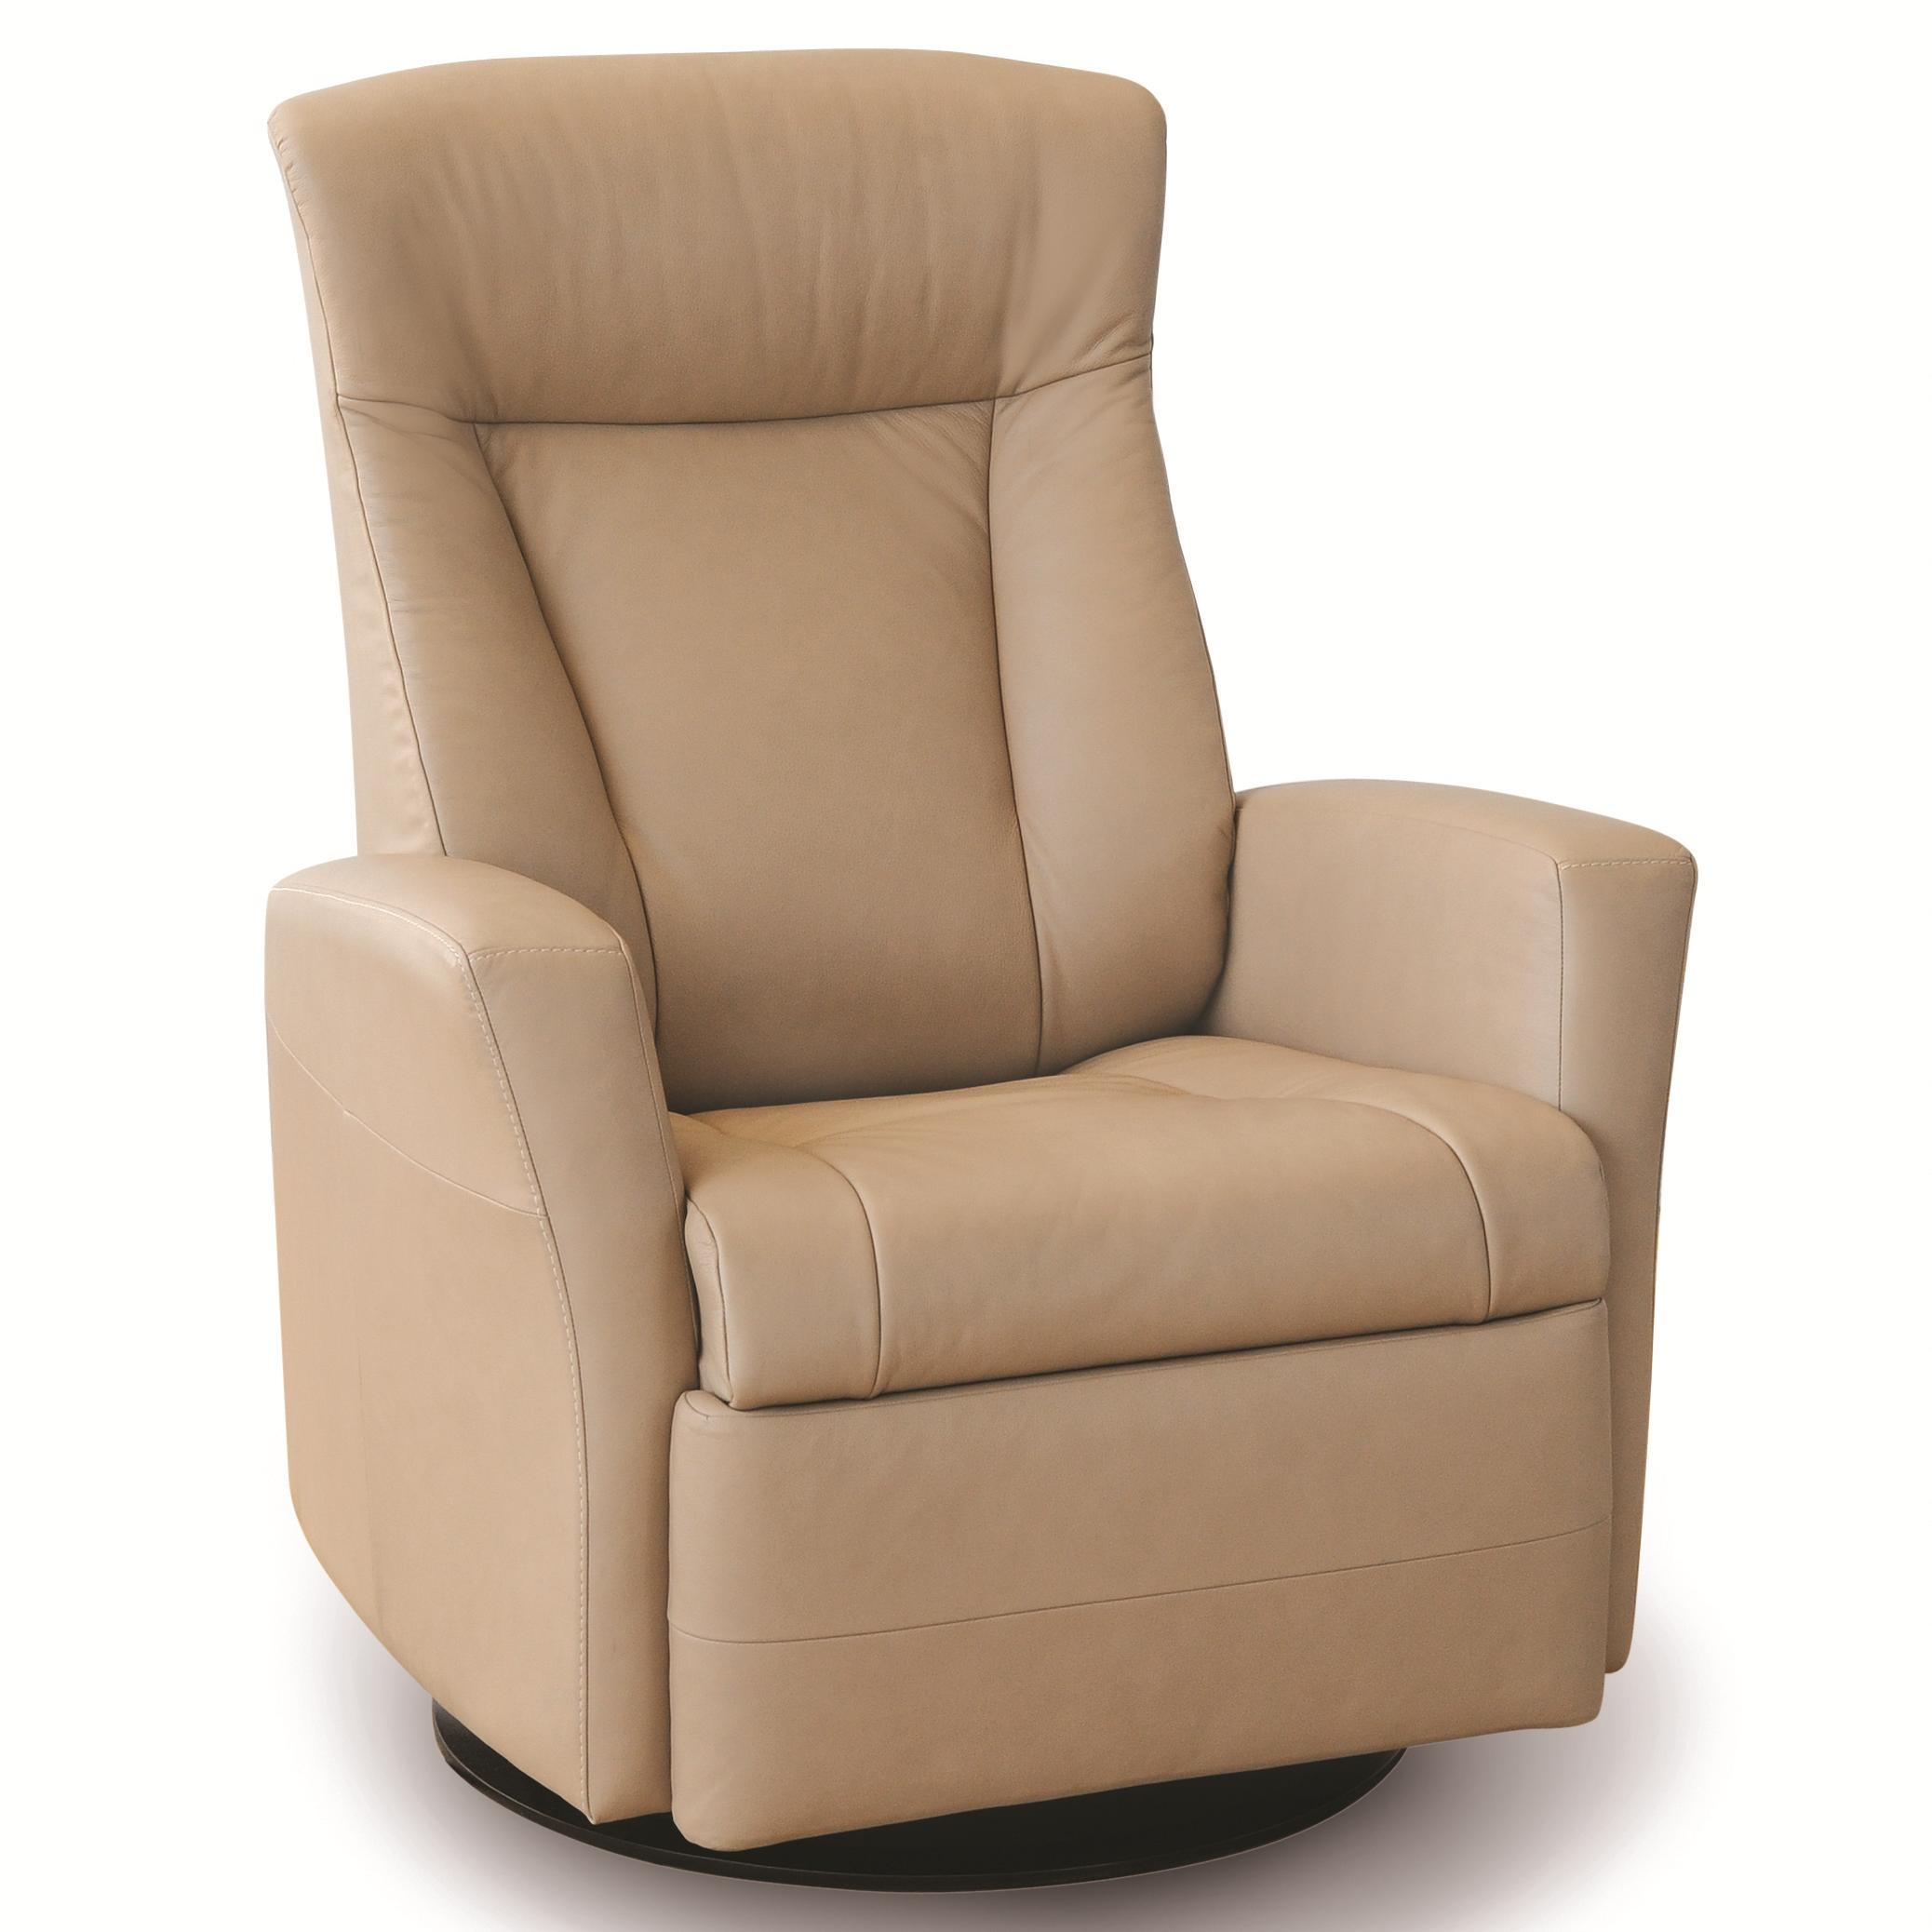 Vendor 508 Recliners Recliner Relaxer - Item Number: 0154270SO